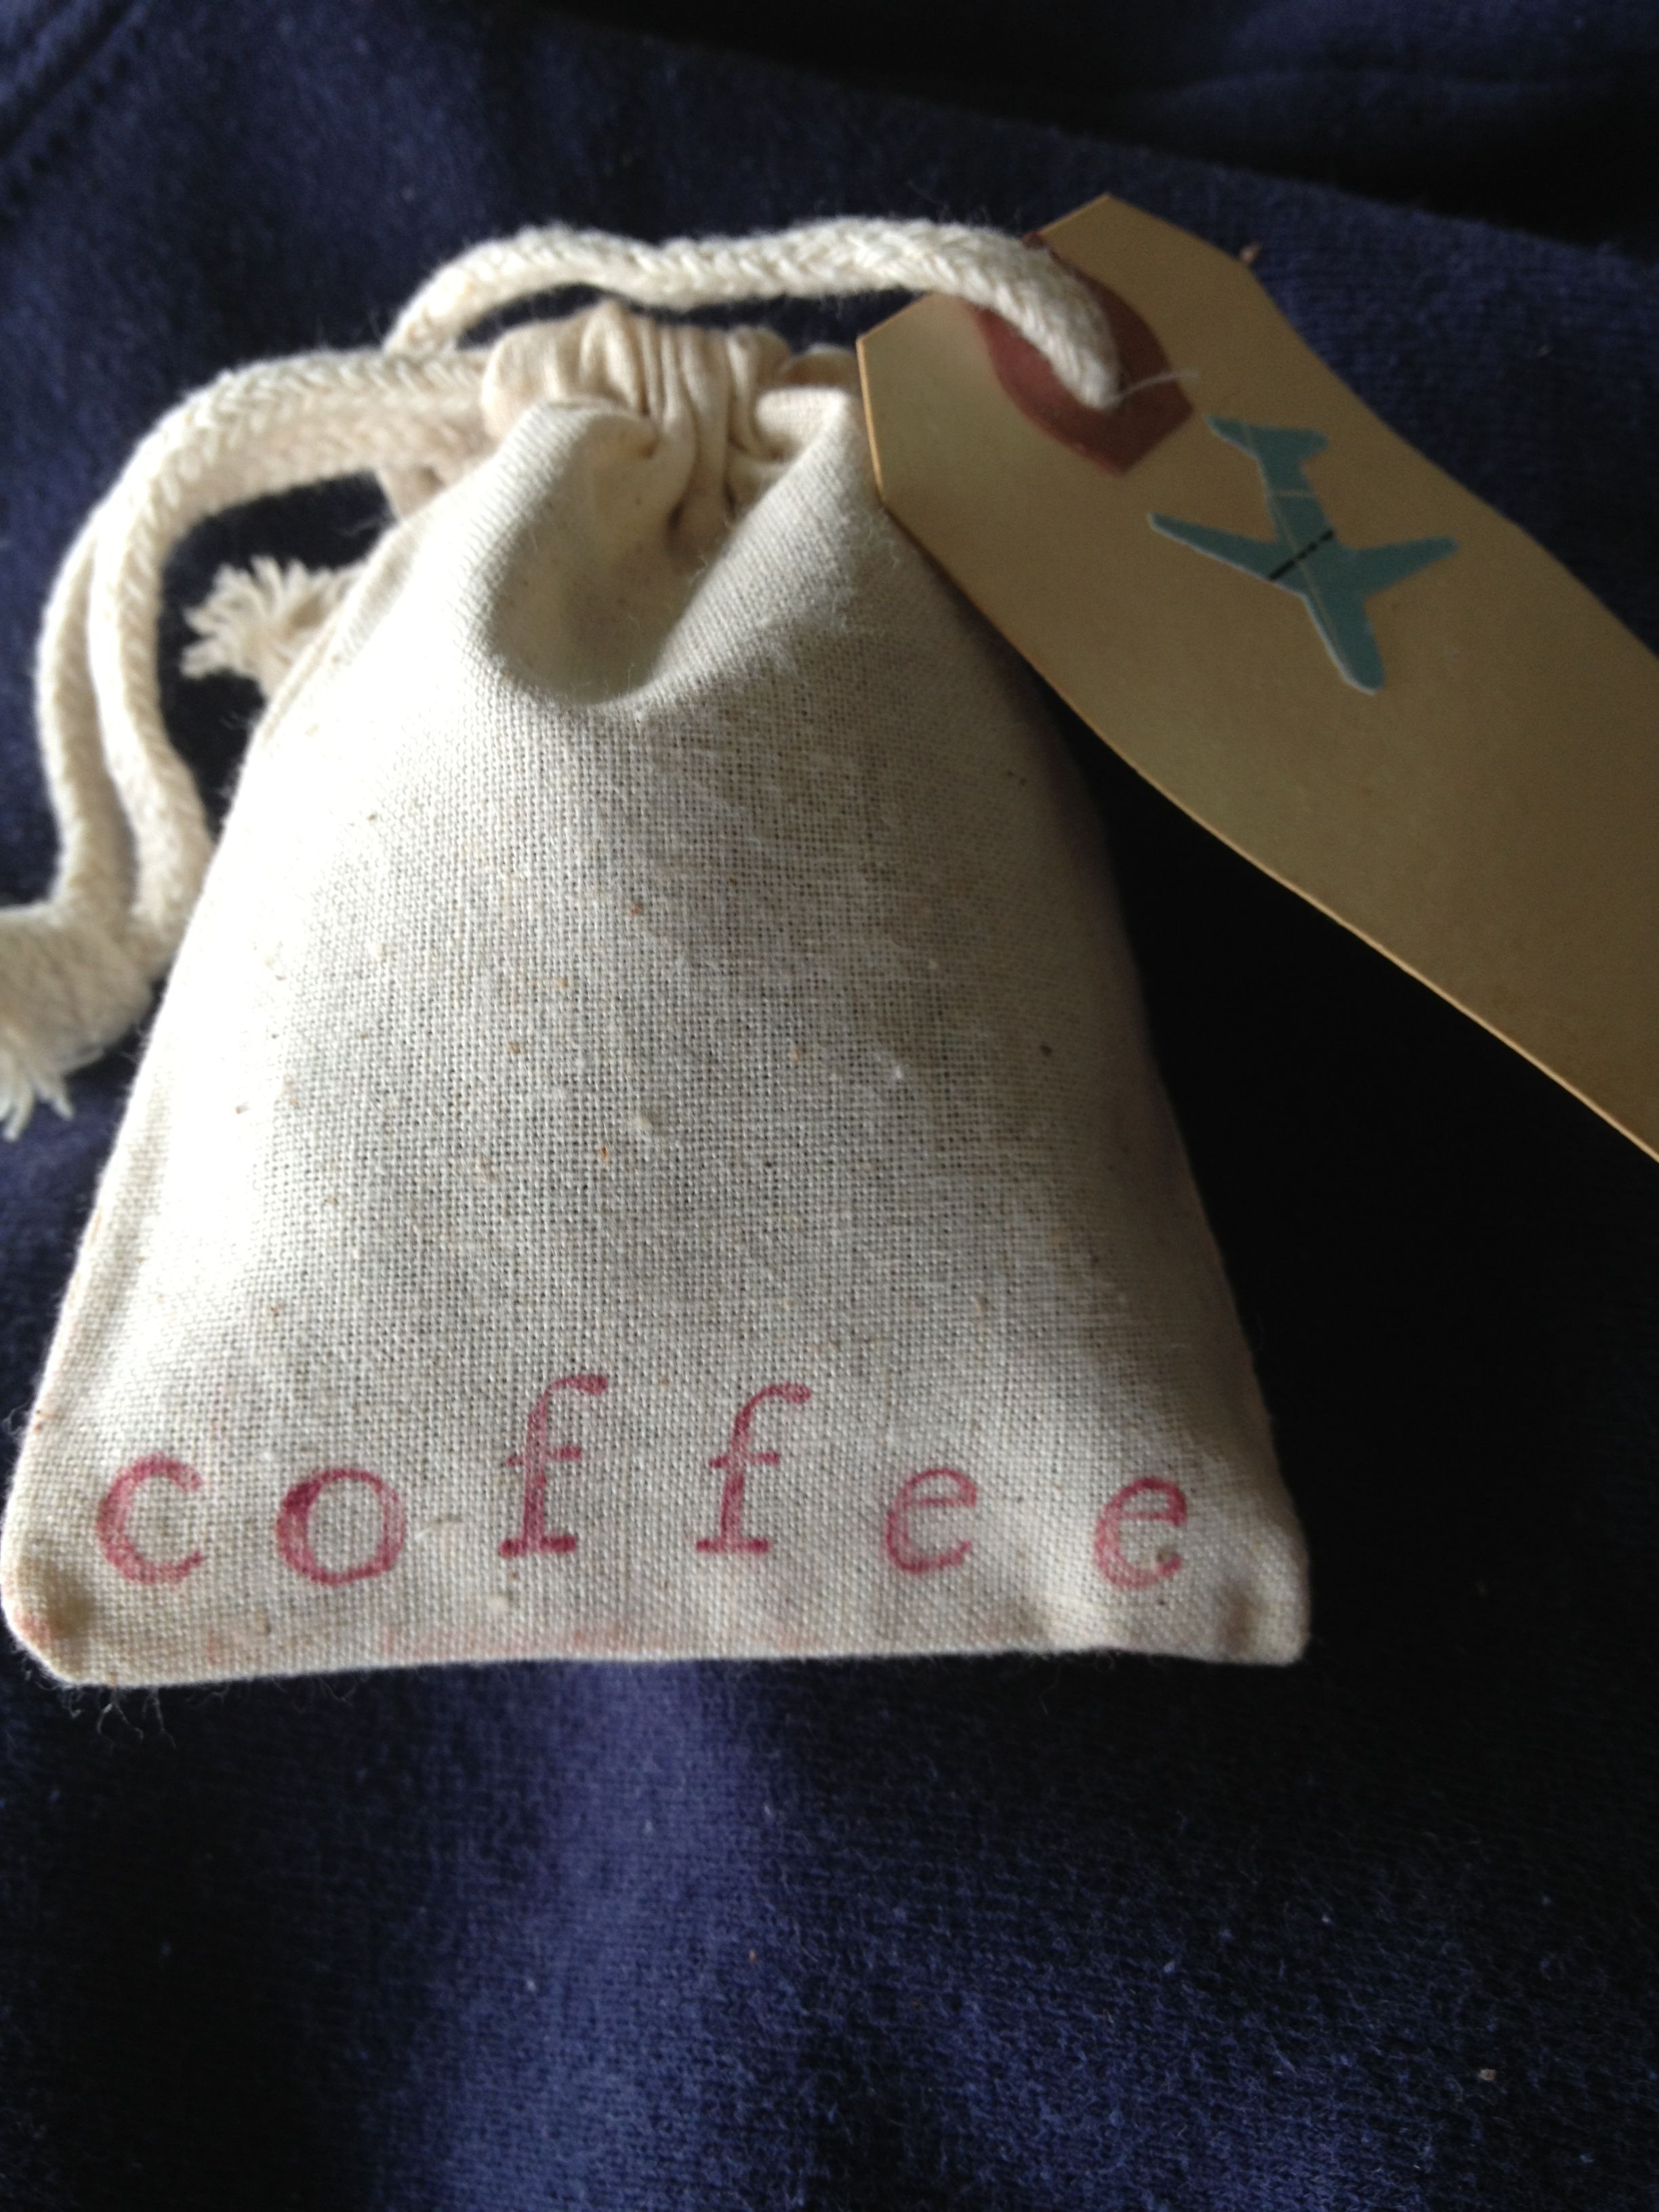 Super Easy Inexpensive Wedding Favor Or Card Muslin Bag With Whole Bean Coffee